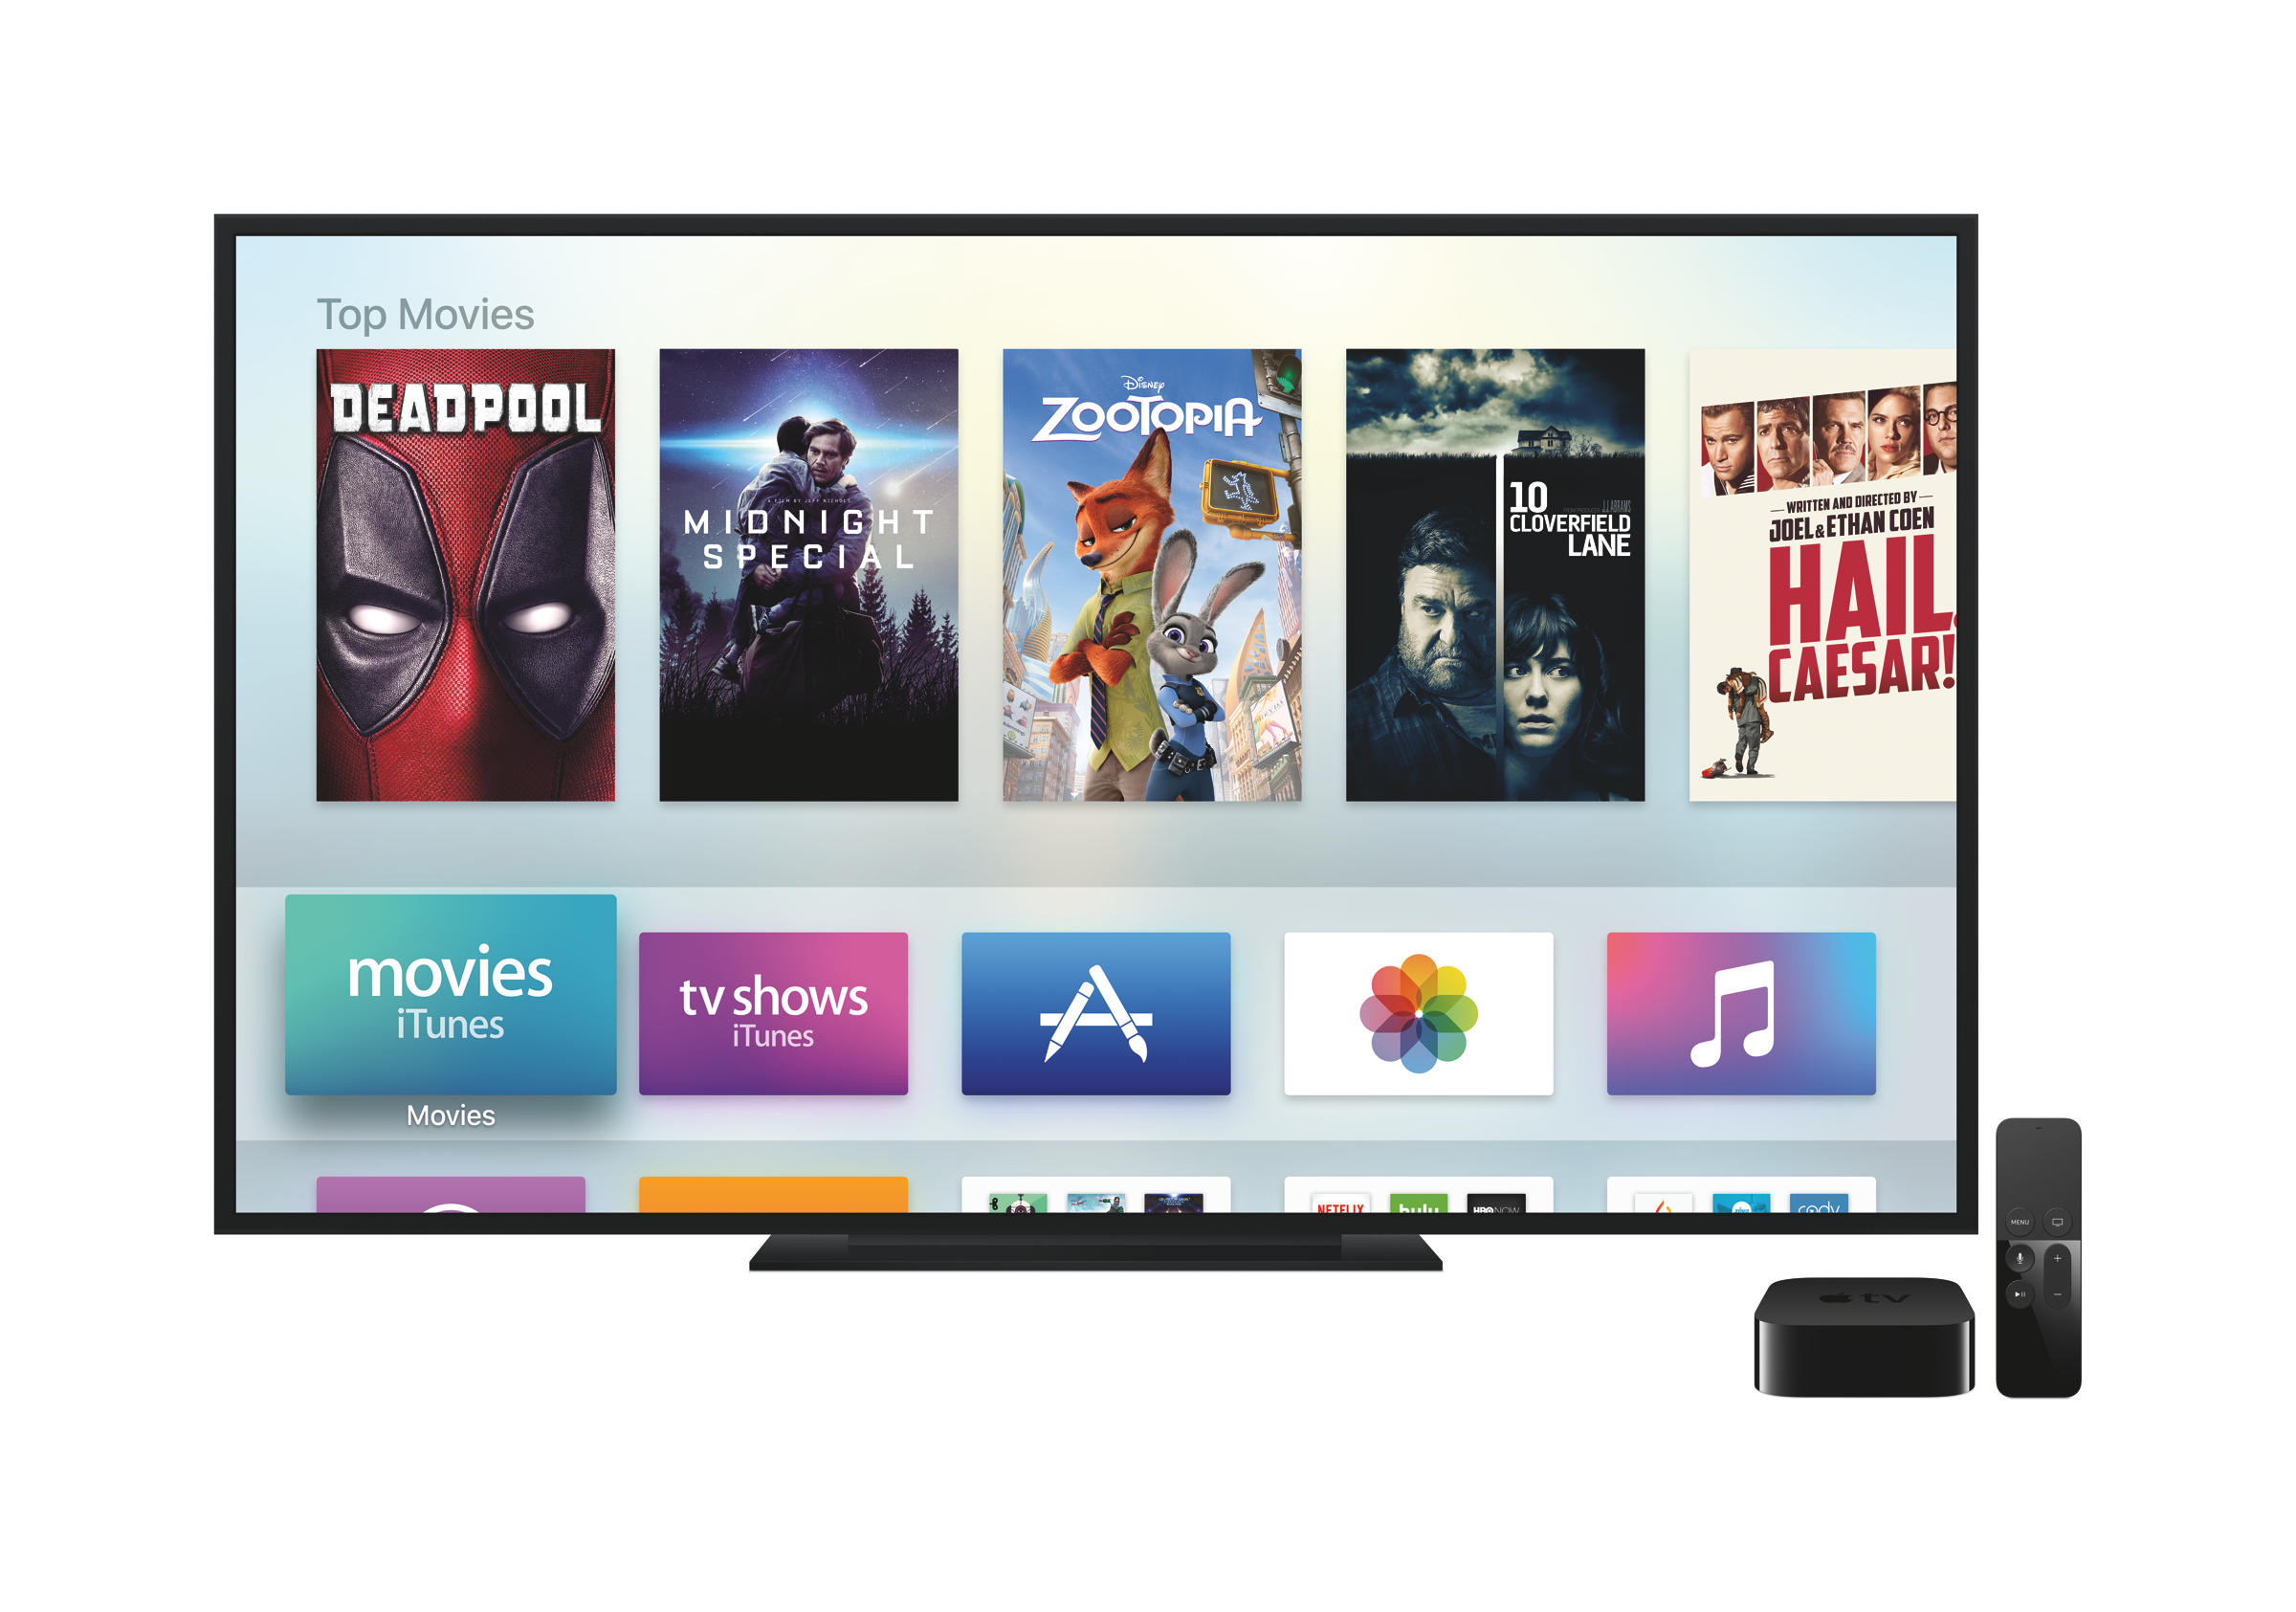 apple_tv_os.png